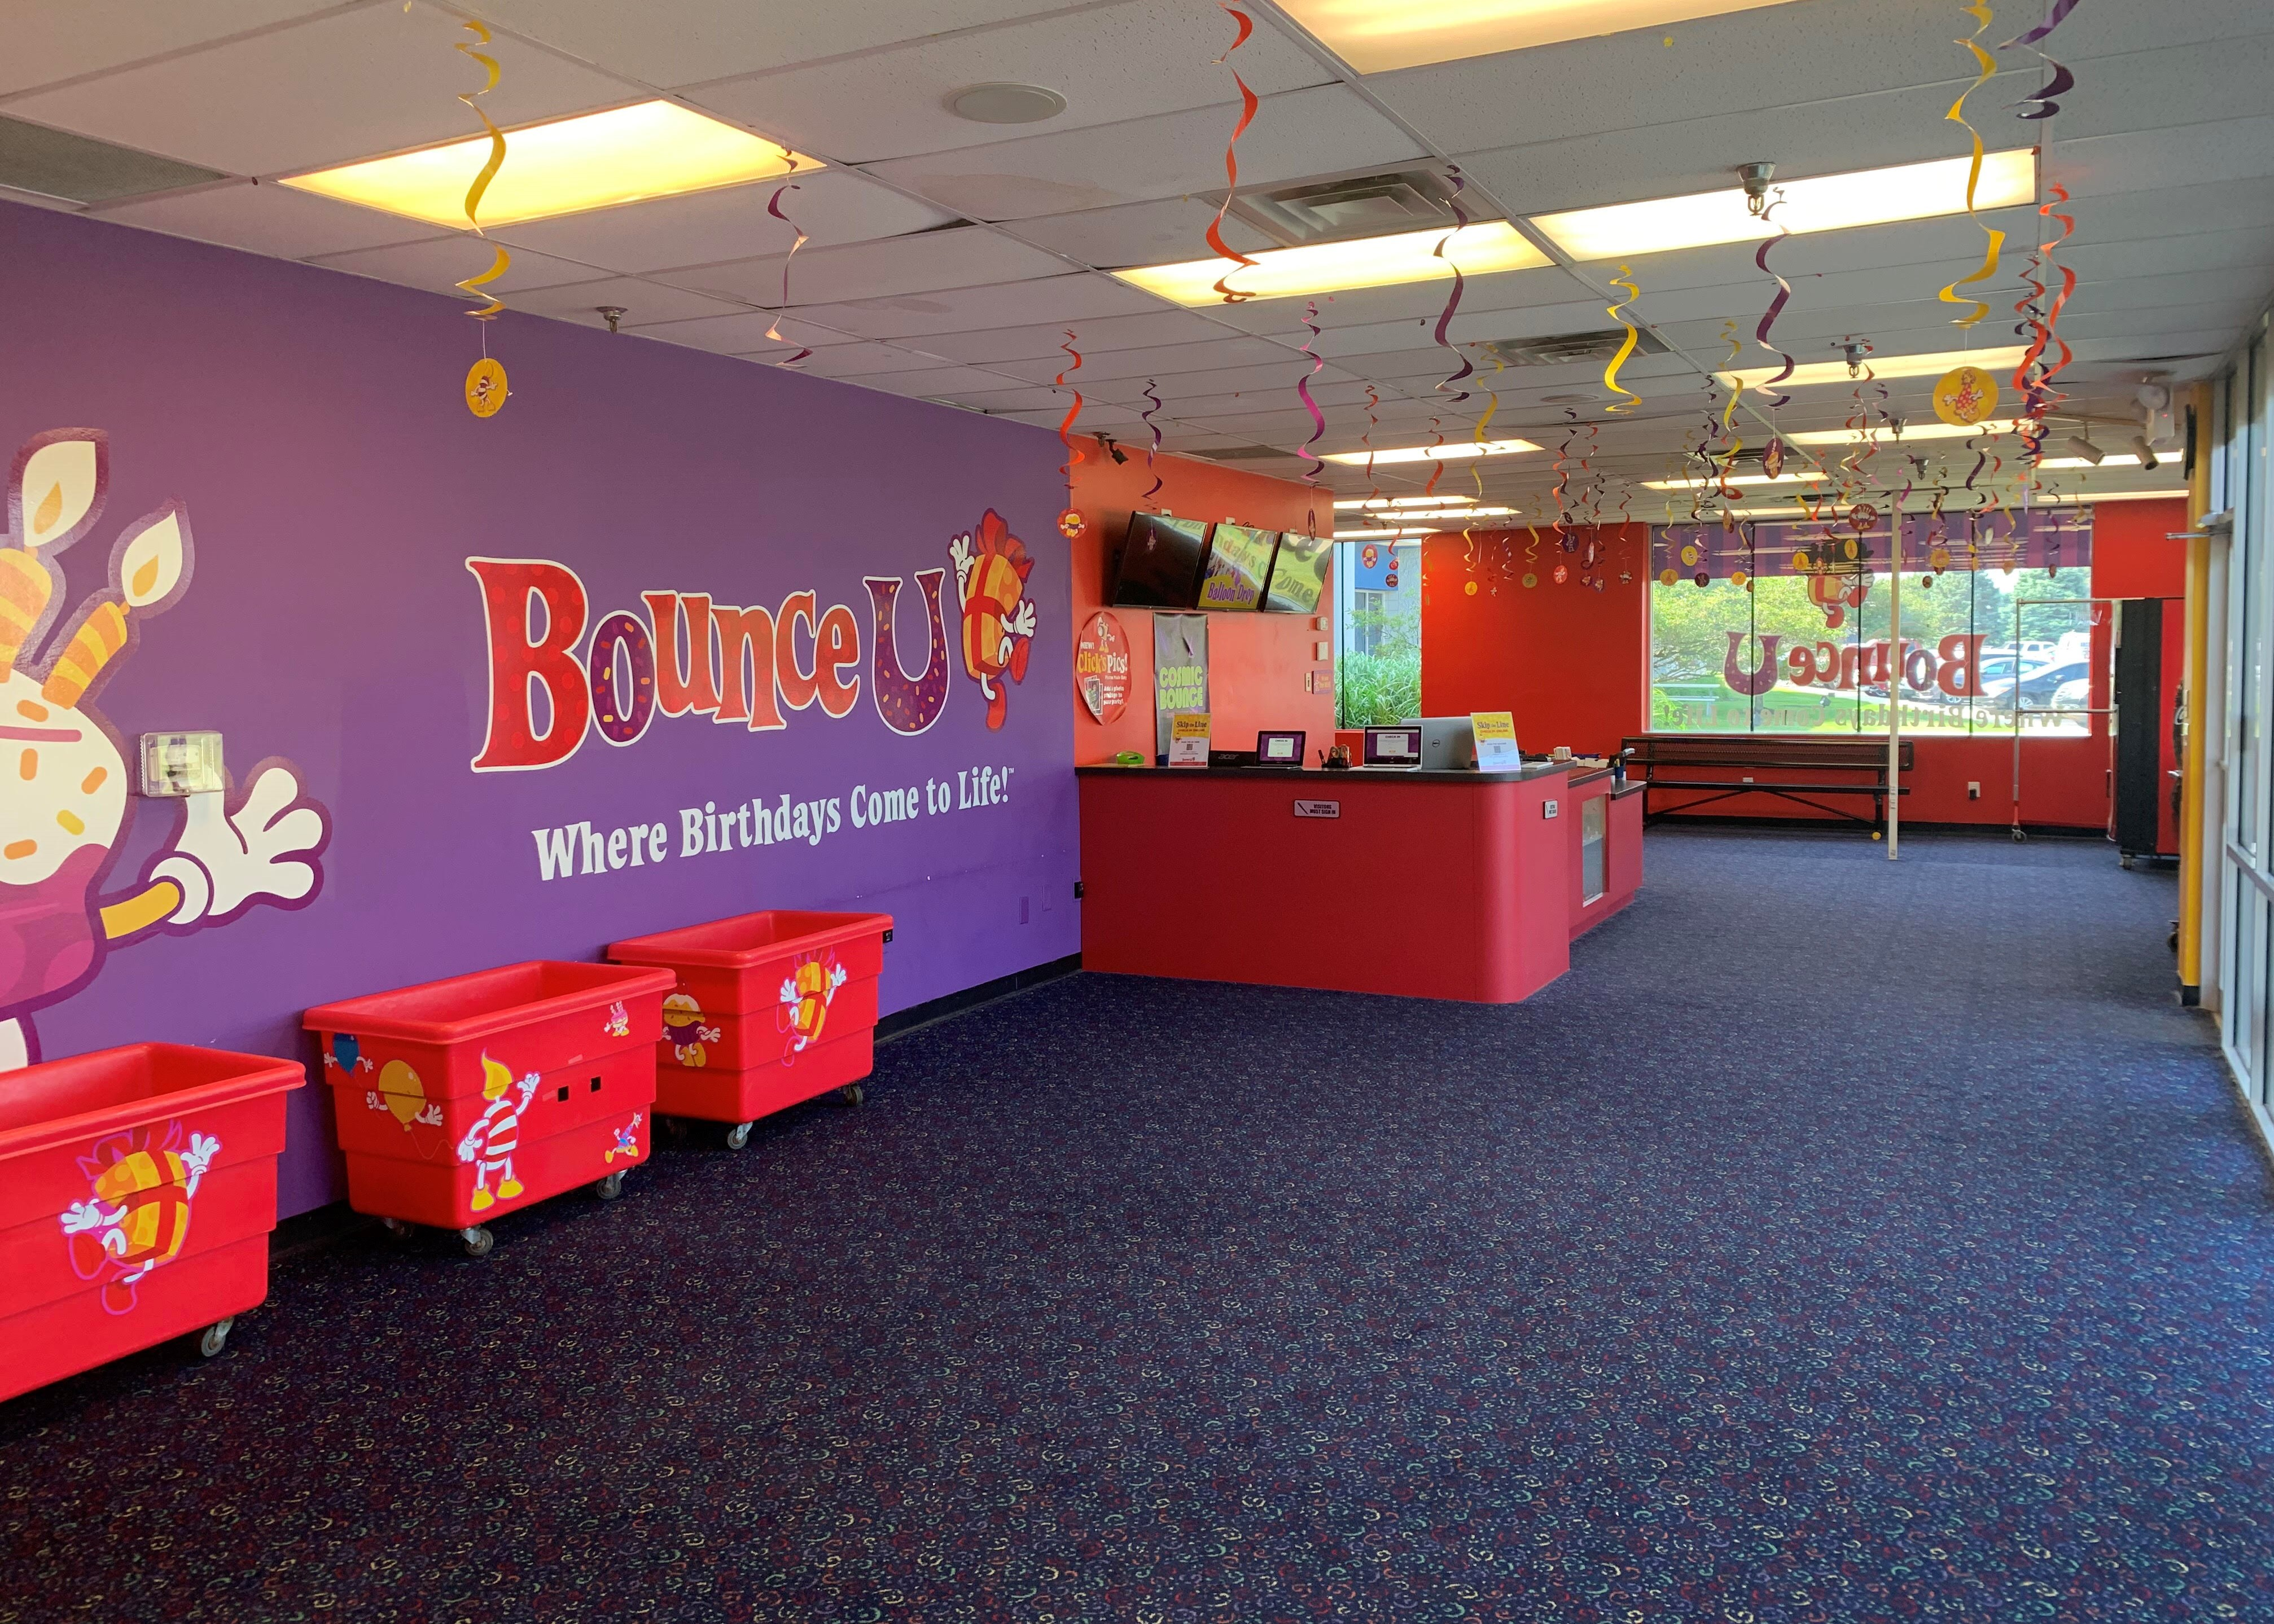 BounceU lobby of a kid's birthday party place.